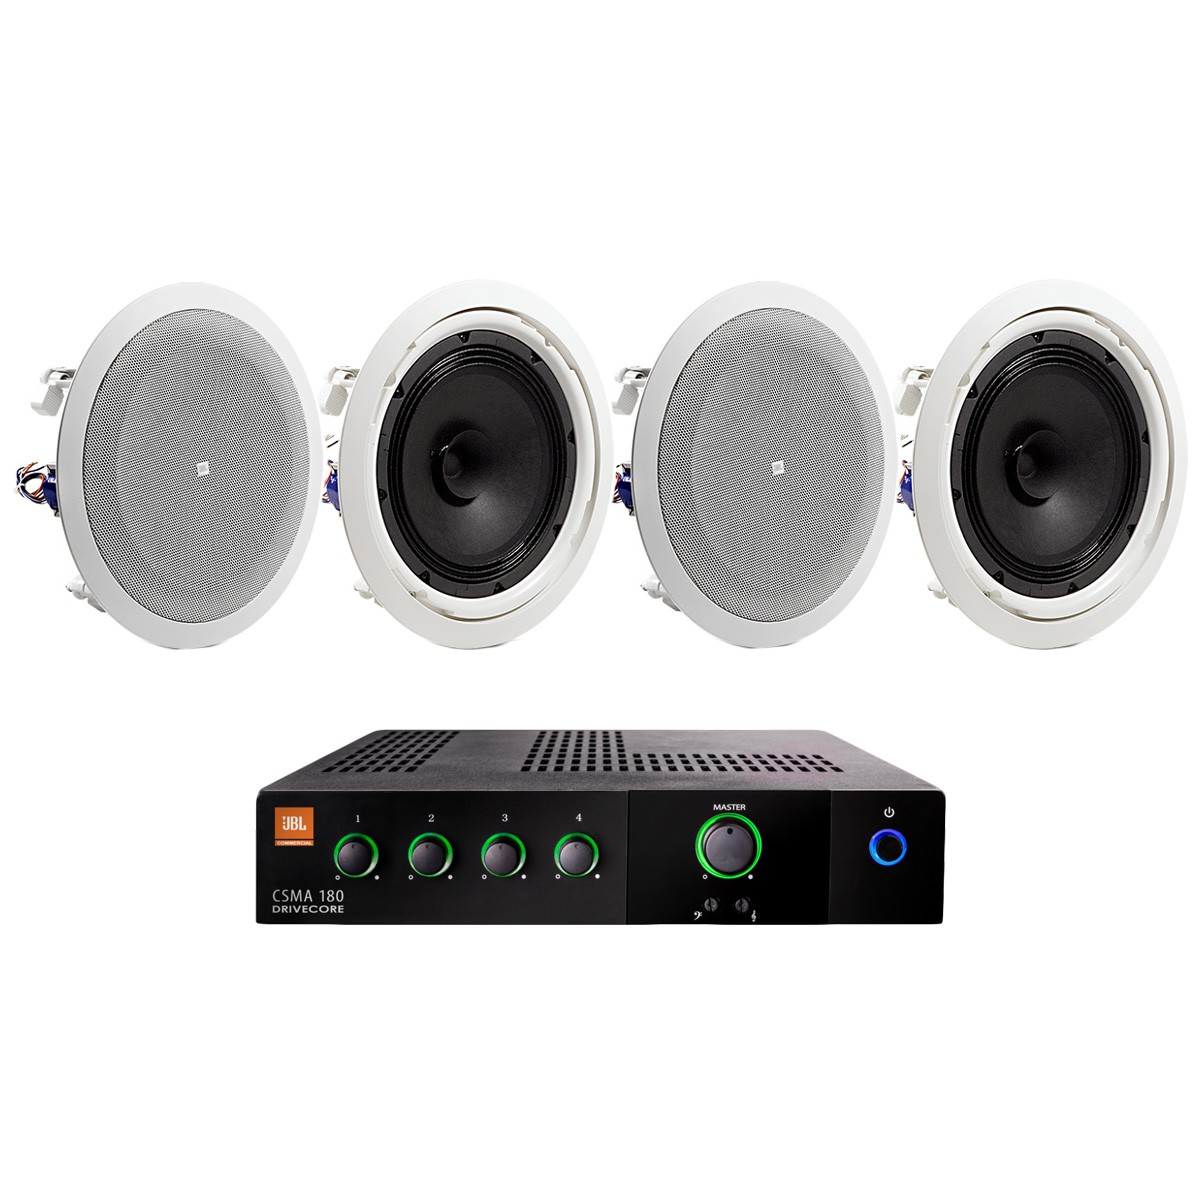 Conference Room Sound System With 4 Jbl In Ceiling